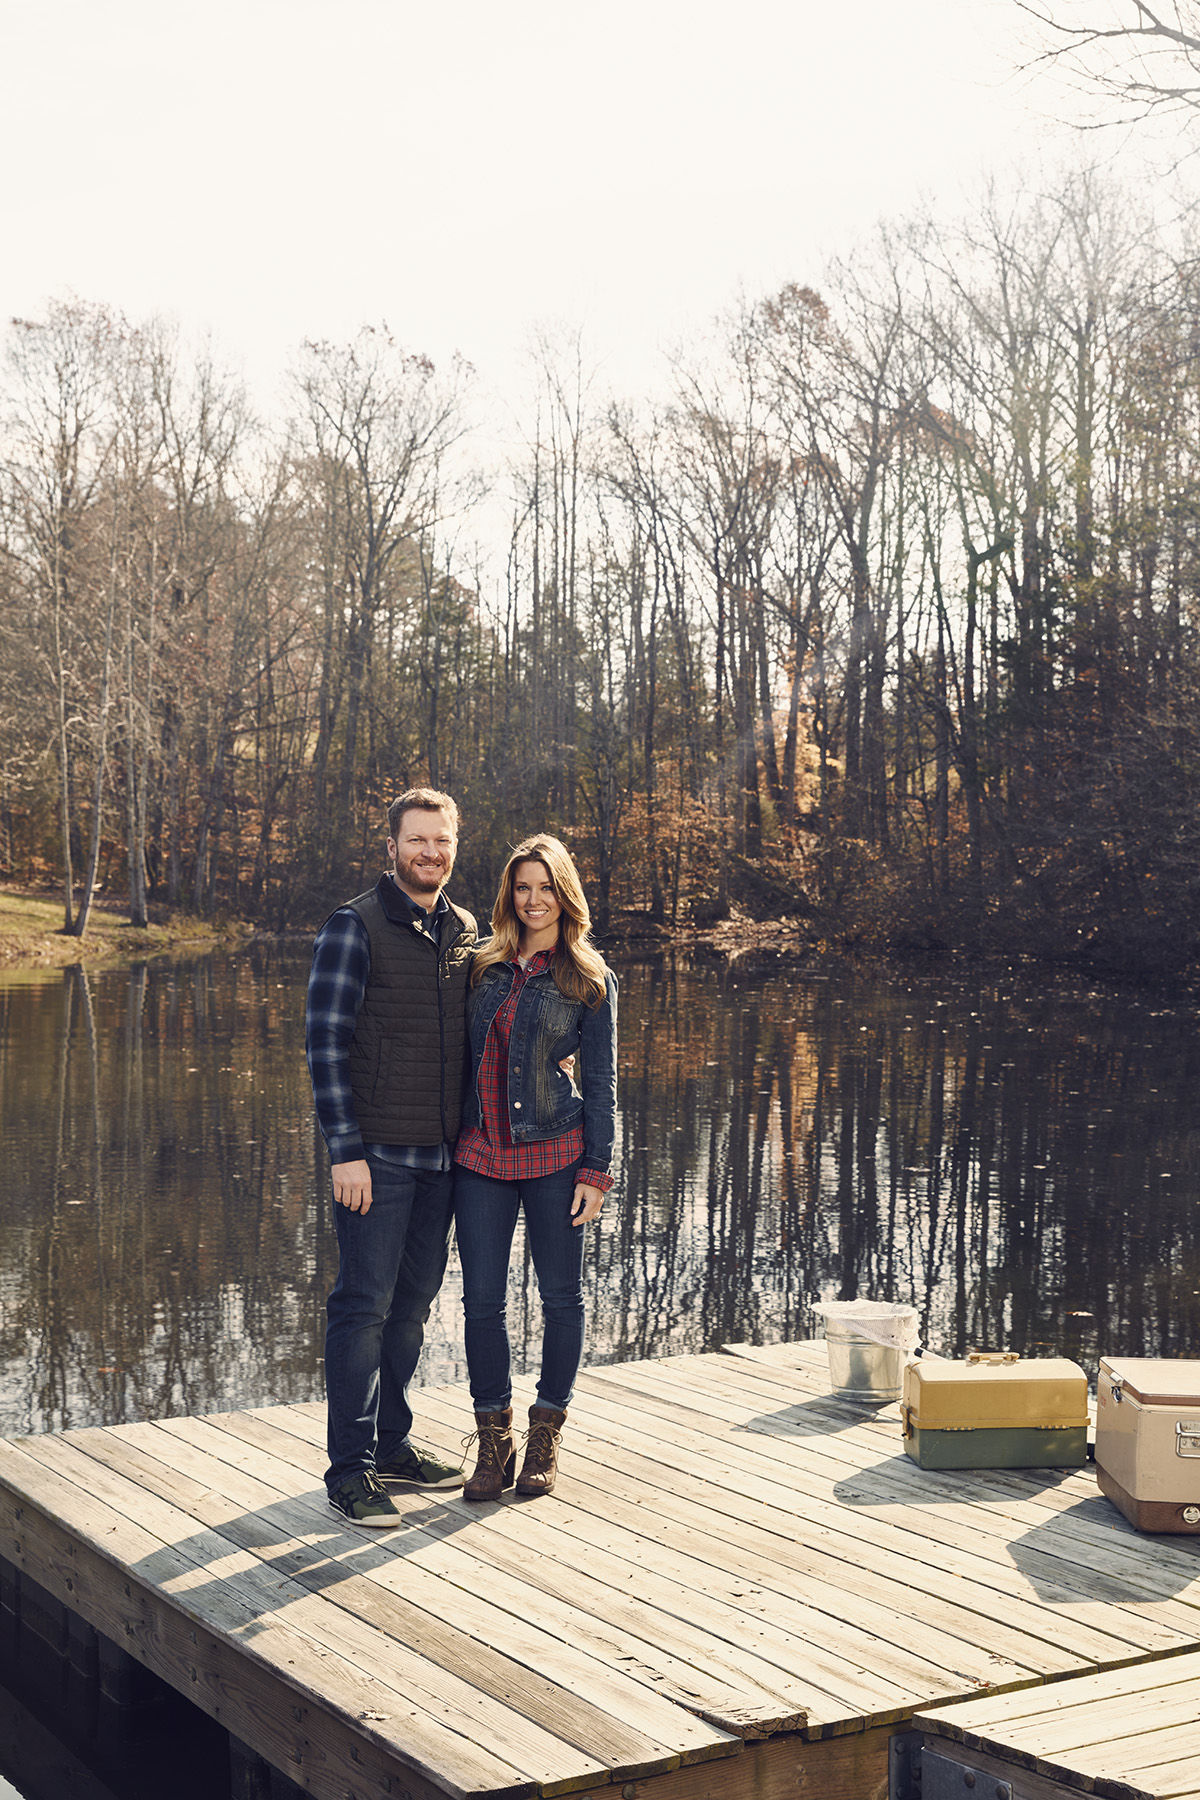 Get Ready for Dale Earnhardt Jr.'s New Home Renovation Show